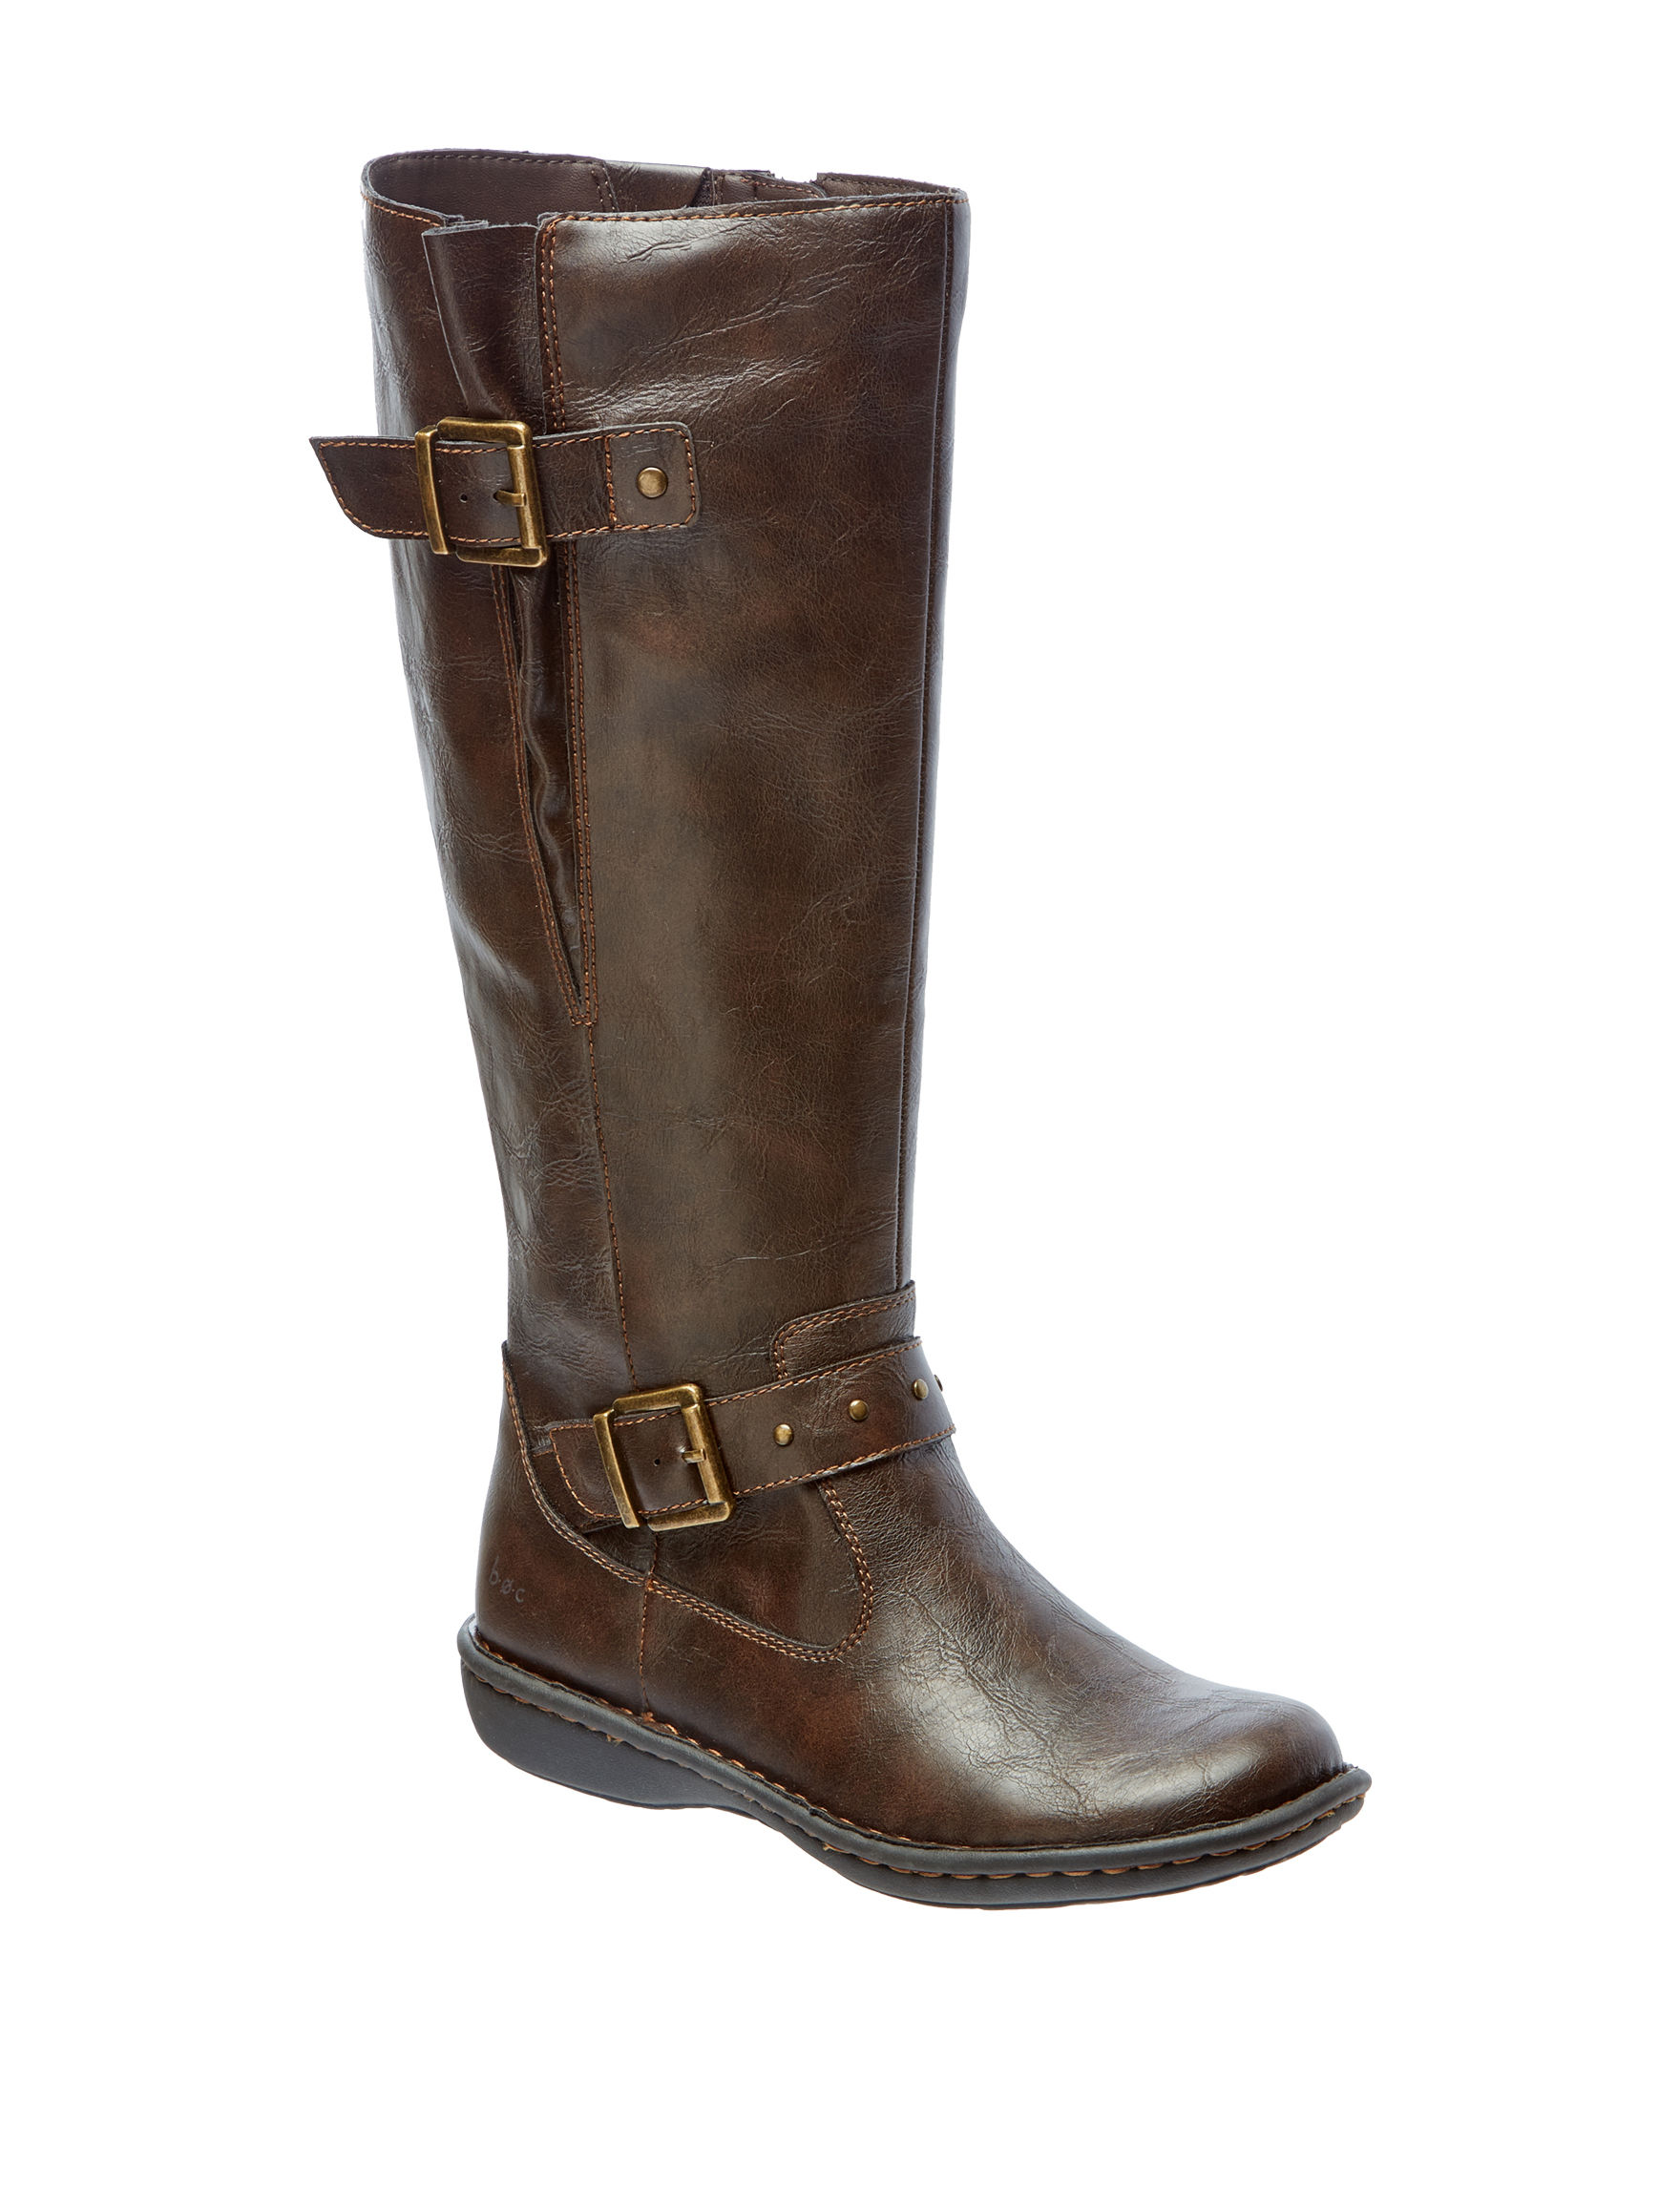 B.O.C. Brown Riding Boots Wide Calf